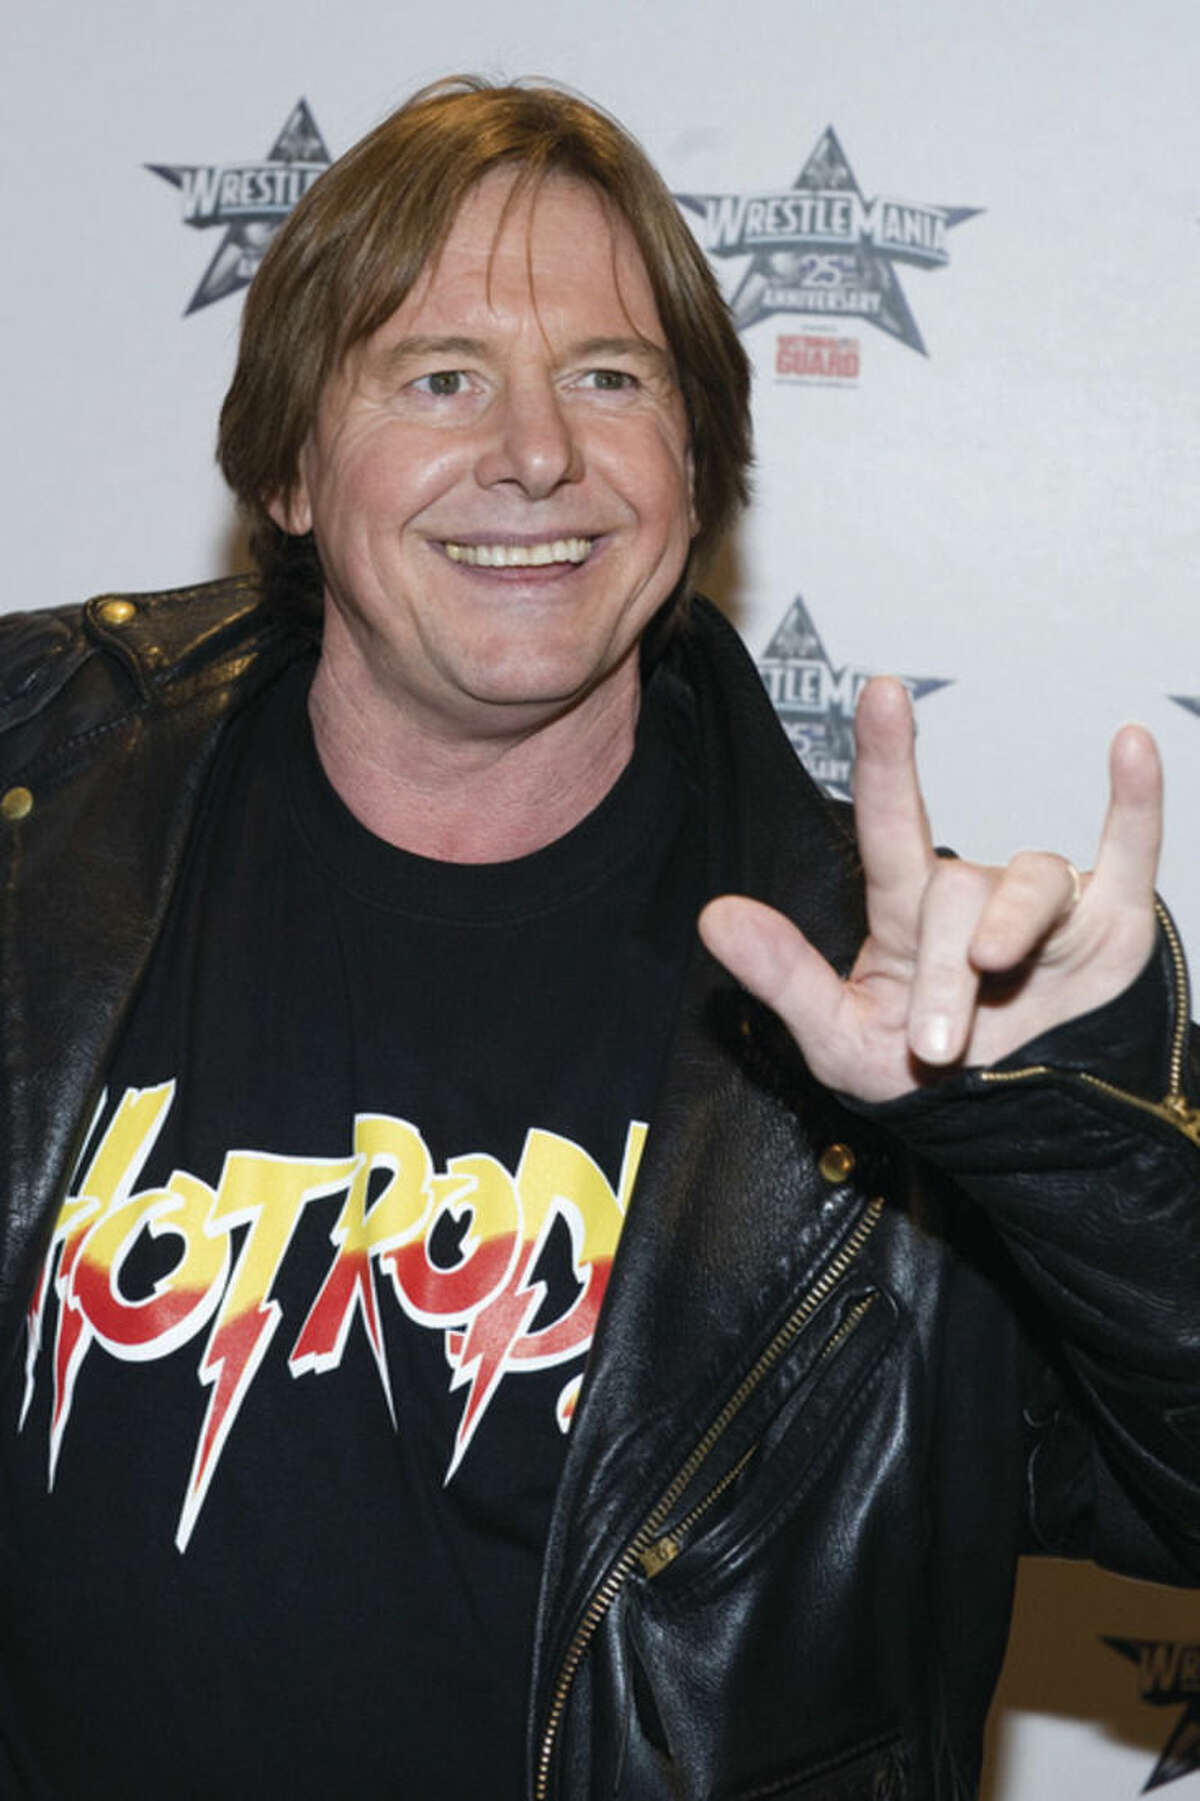 AP file photo/Charles Sykes In this March 31, 2009, file photo, former professional wrestler Roddy Piper attends the 25th Anniversary of WrestleMania press conference in New York. The WWE said Piper died Friday. He was 61.